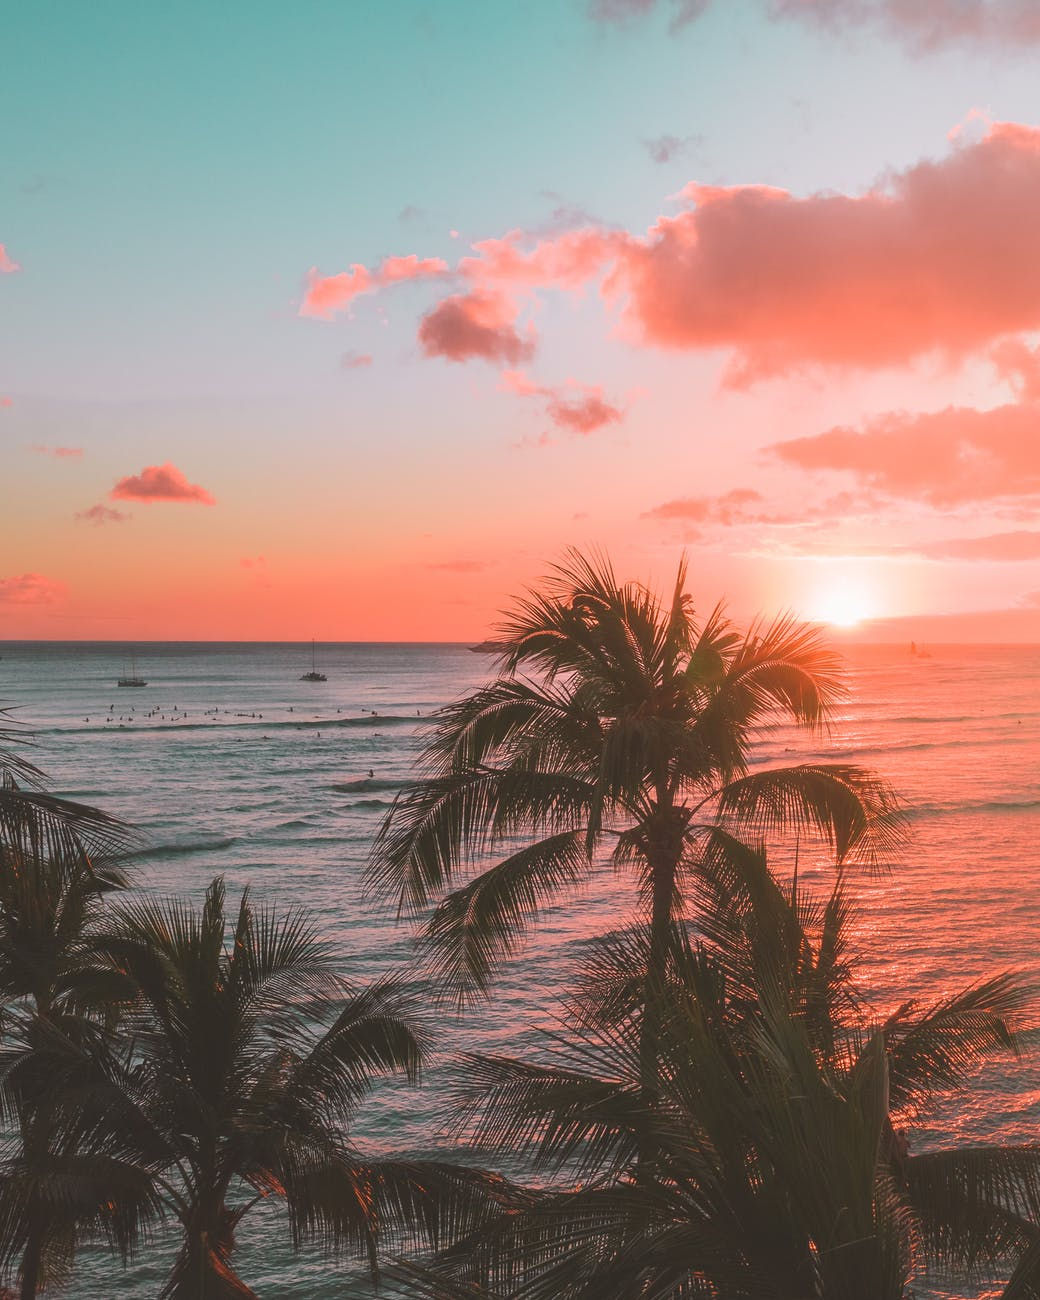 palm tree near body of water during sunset